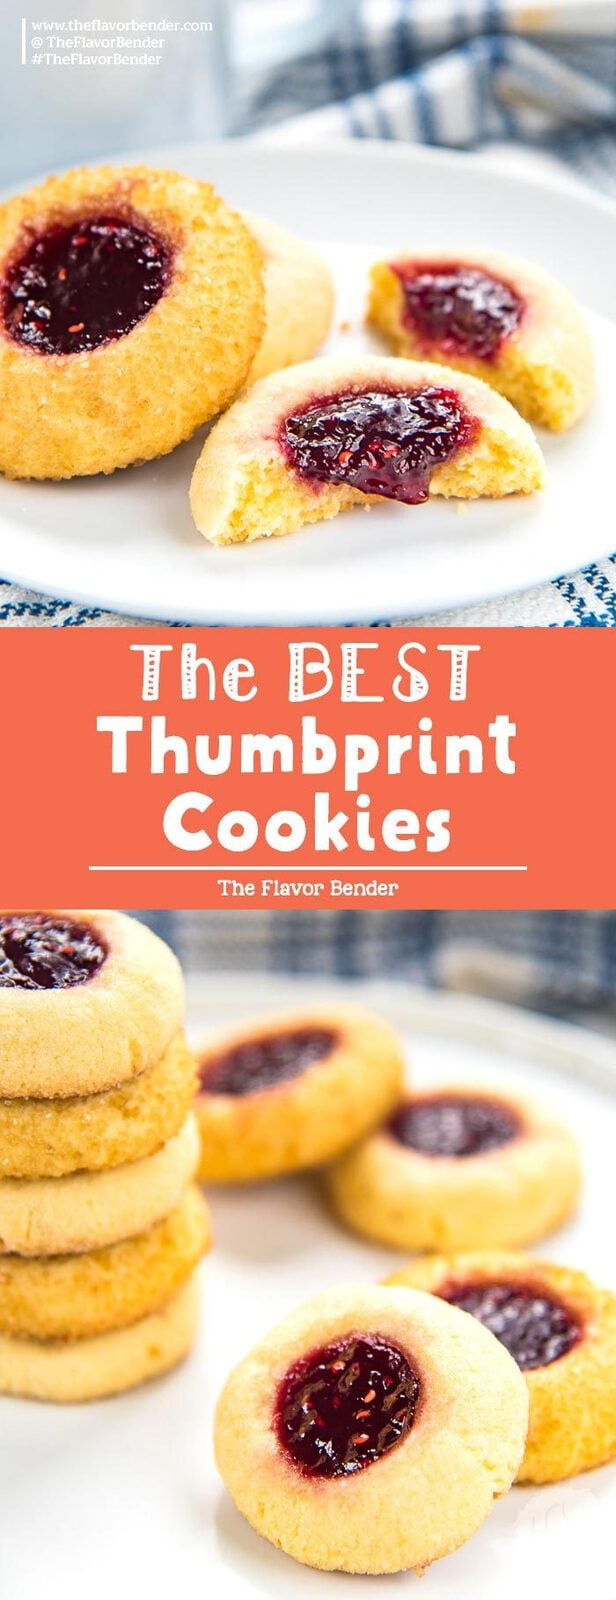 Easy Thumbprint Cookies - These cookies are a classic holiday favorite and they are so easy to make! Get step by step instructions with tips on how to make perfect thumbprint cookies. #ThumbprintCookies #HolidayCookies #ChristmasCookies #EasyCookies